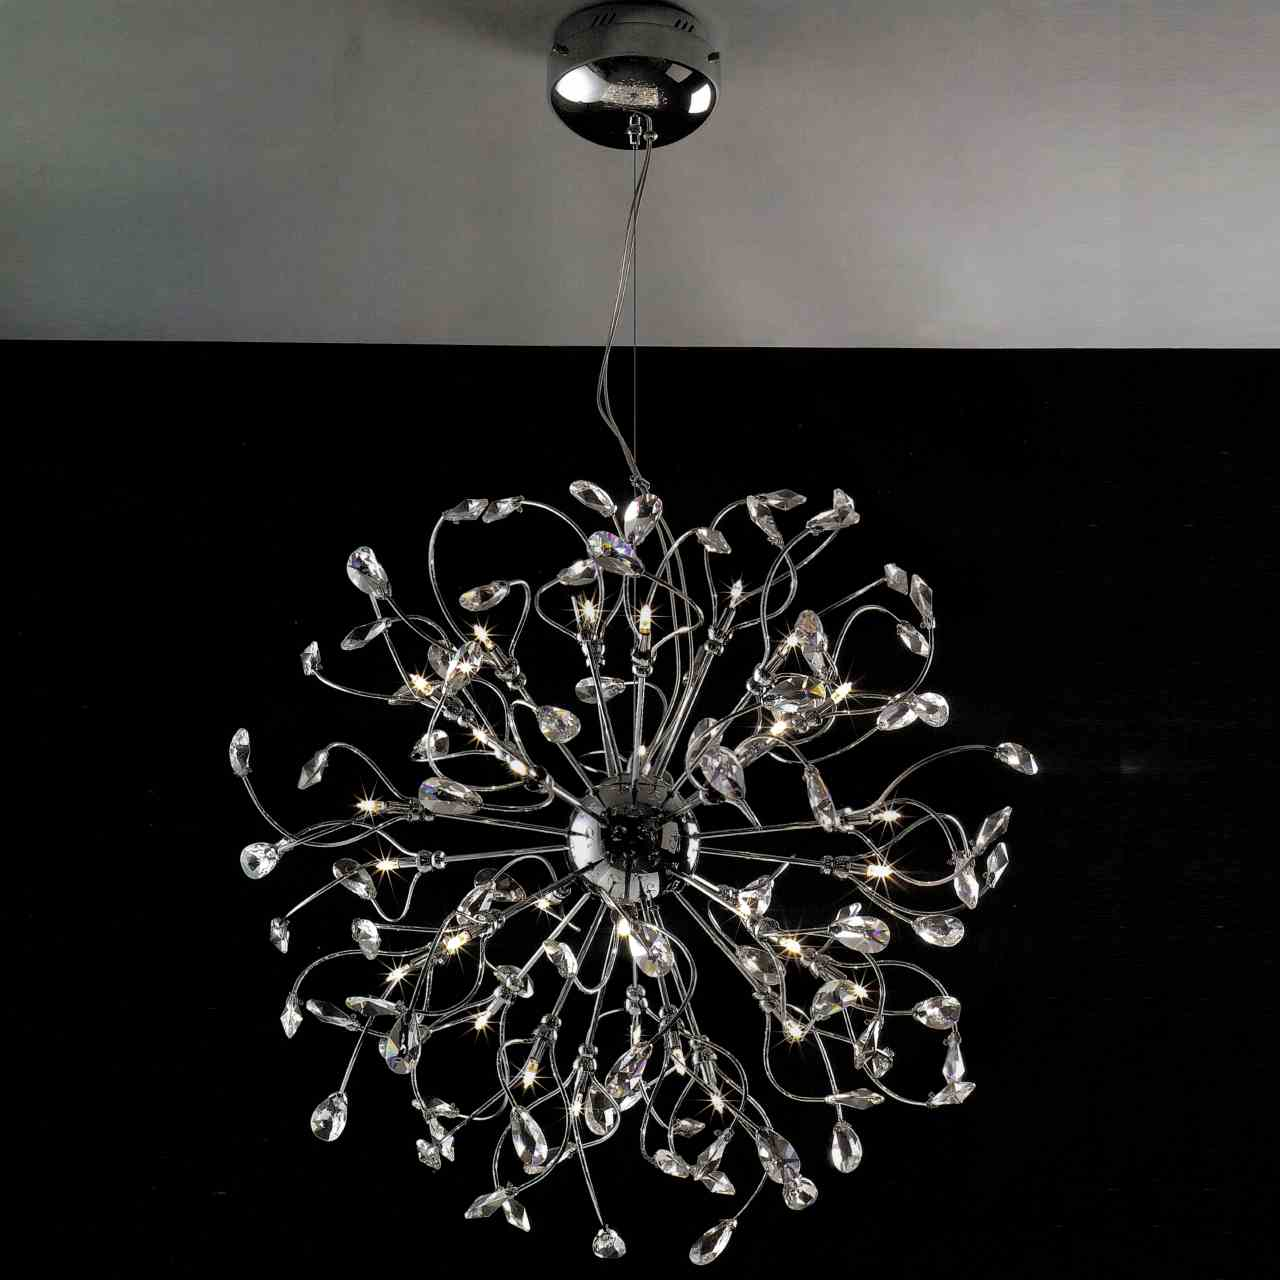 Brizzo lighting stores 30 tempesta modern crystal round chandelier picture of 30 tempesta modern crystal round chandelier polished chrome 32 lights aloadofball Choice Image